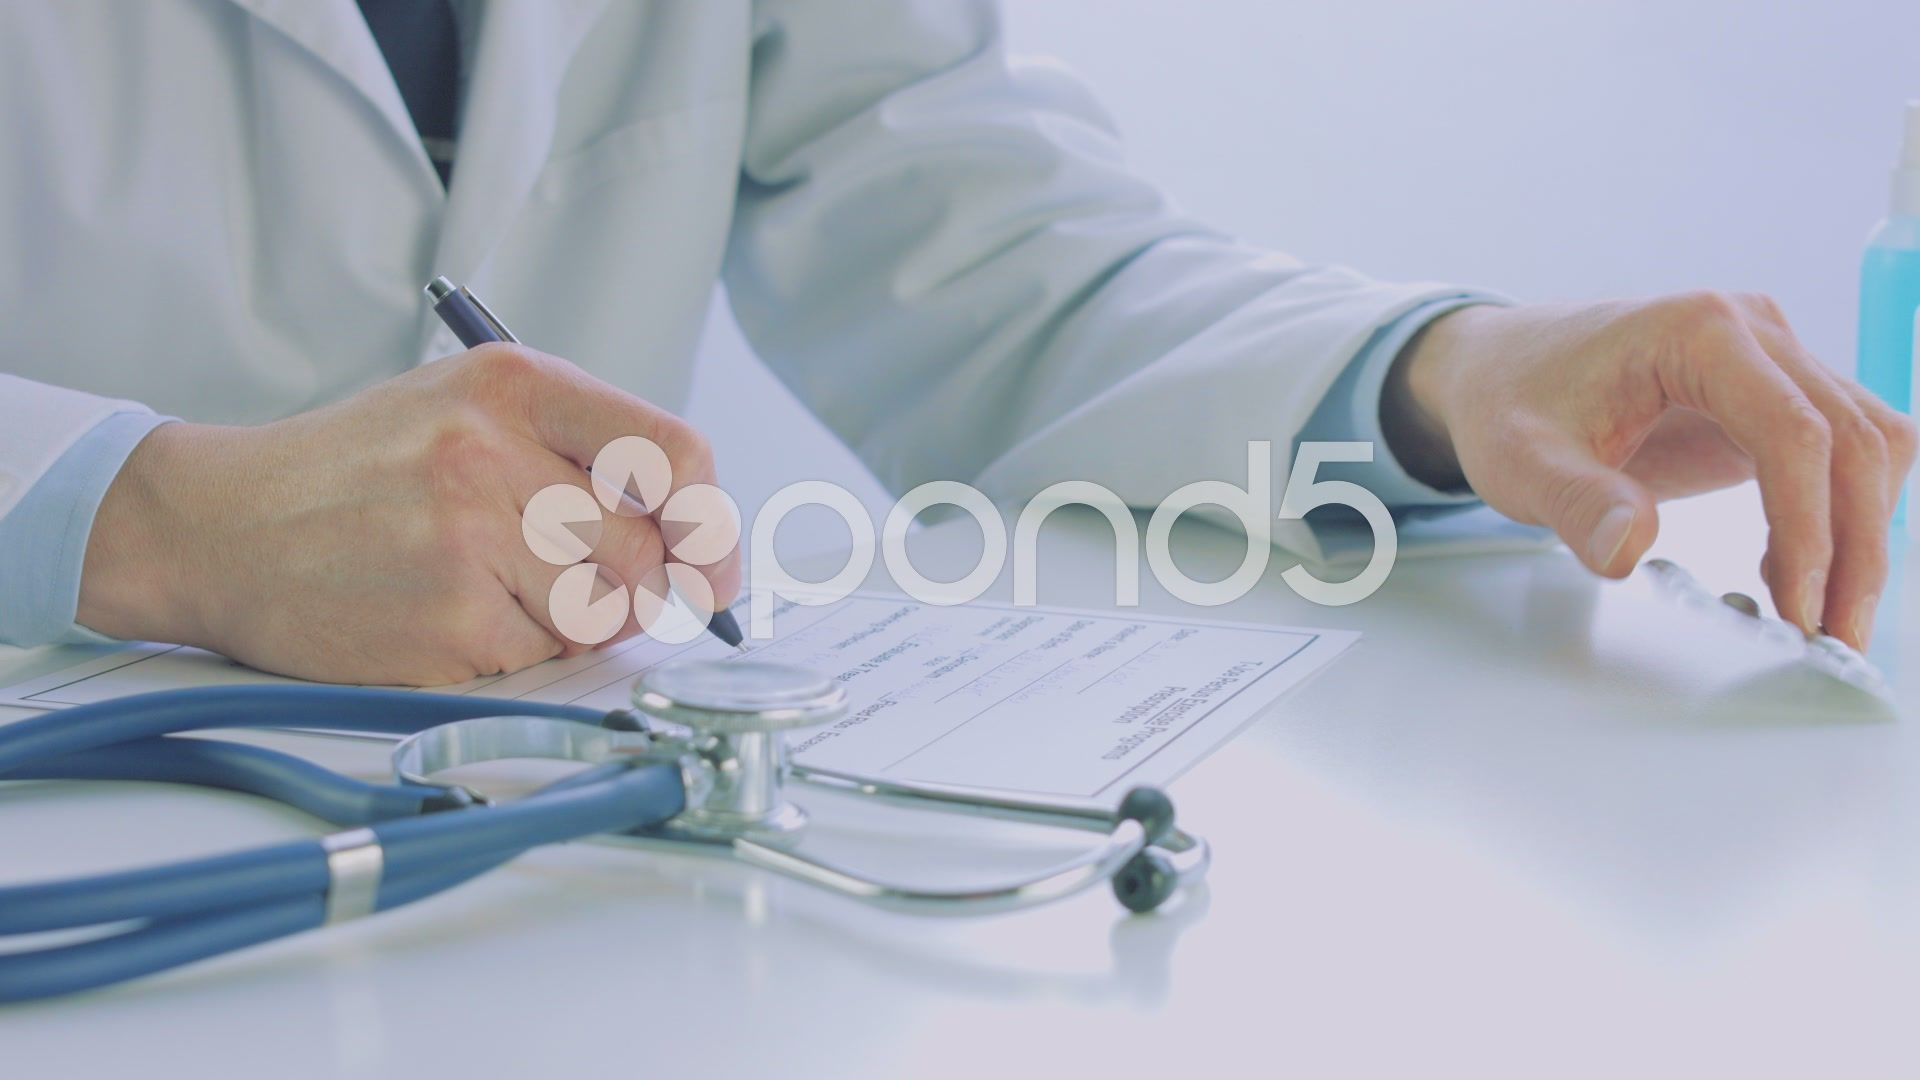 Doctor Hand Writing A Medical Recipe Stock Footage Writing Hand Doctor Medical Medical Handwriting Writing